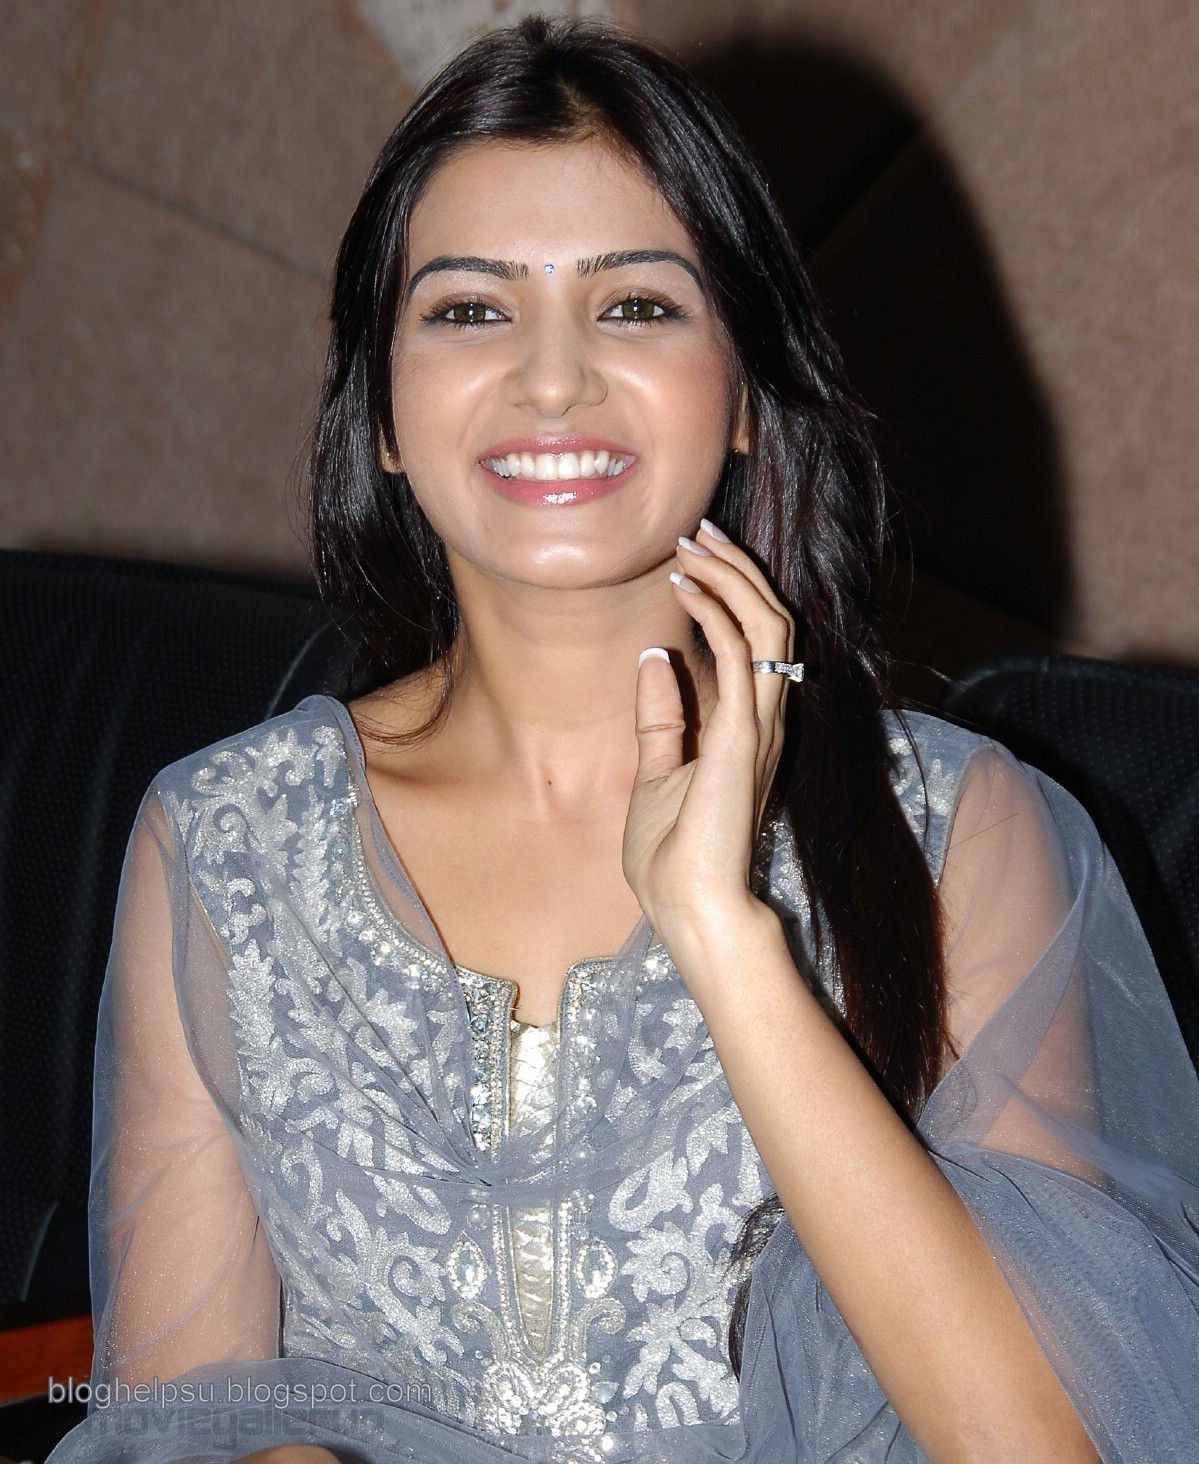 http://1.bp.blogspot.com/_FvM6VcUWsPQ/TMQLxKwi9fI/AAAAAAAAASI/cfI5c8YCYTU/s1600/actress_samantha_cute_smile_stills_wallpapers_01.jpg